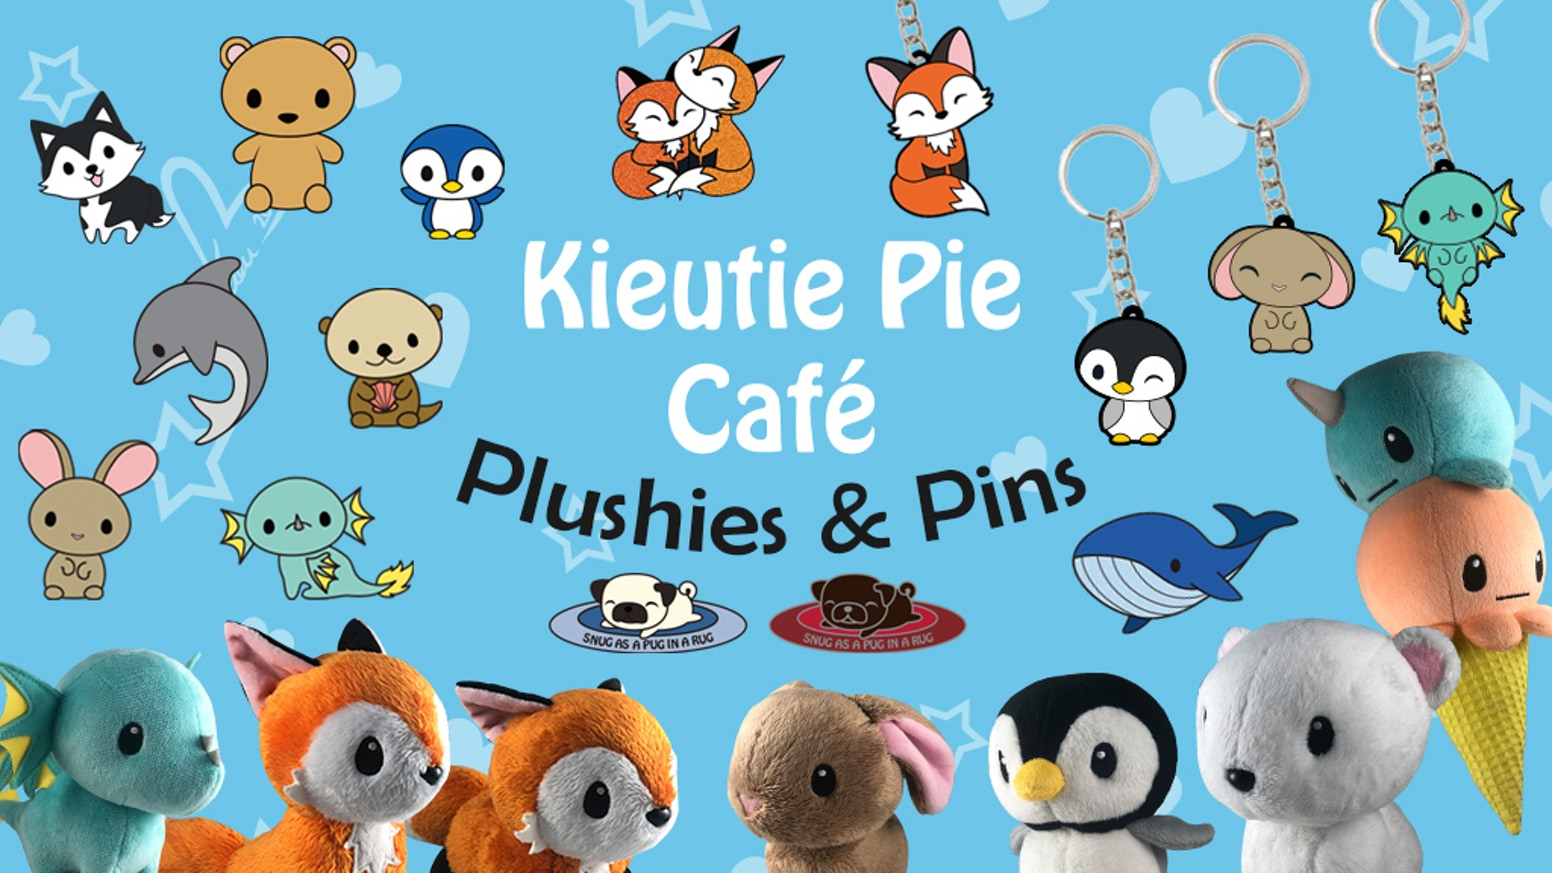 Welcome to Kieutie Pie Café! Help bring Coffee Fox and friends to life as cuddly travel buddy plushies!